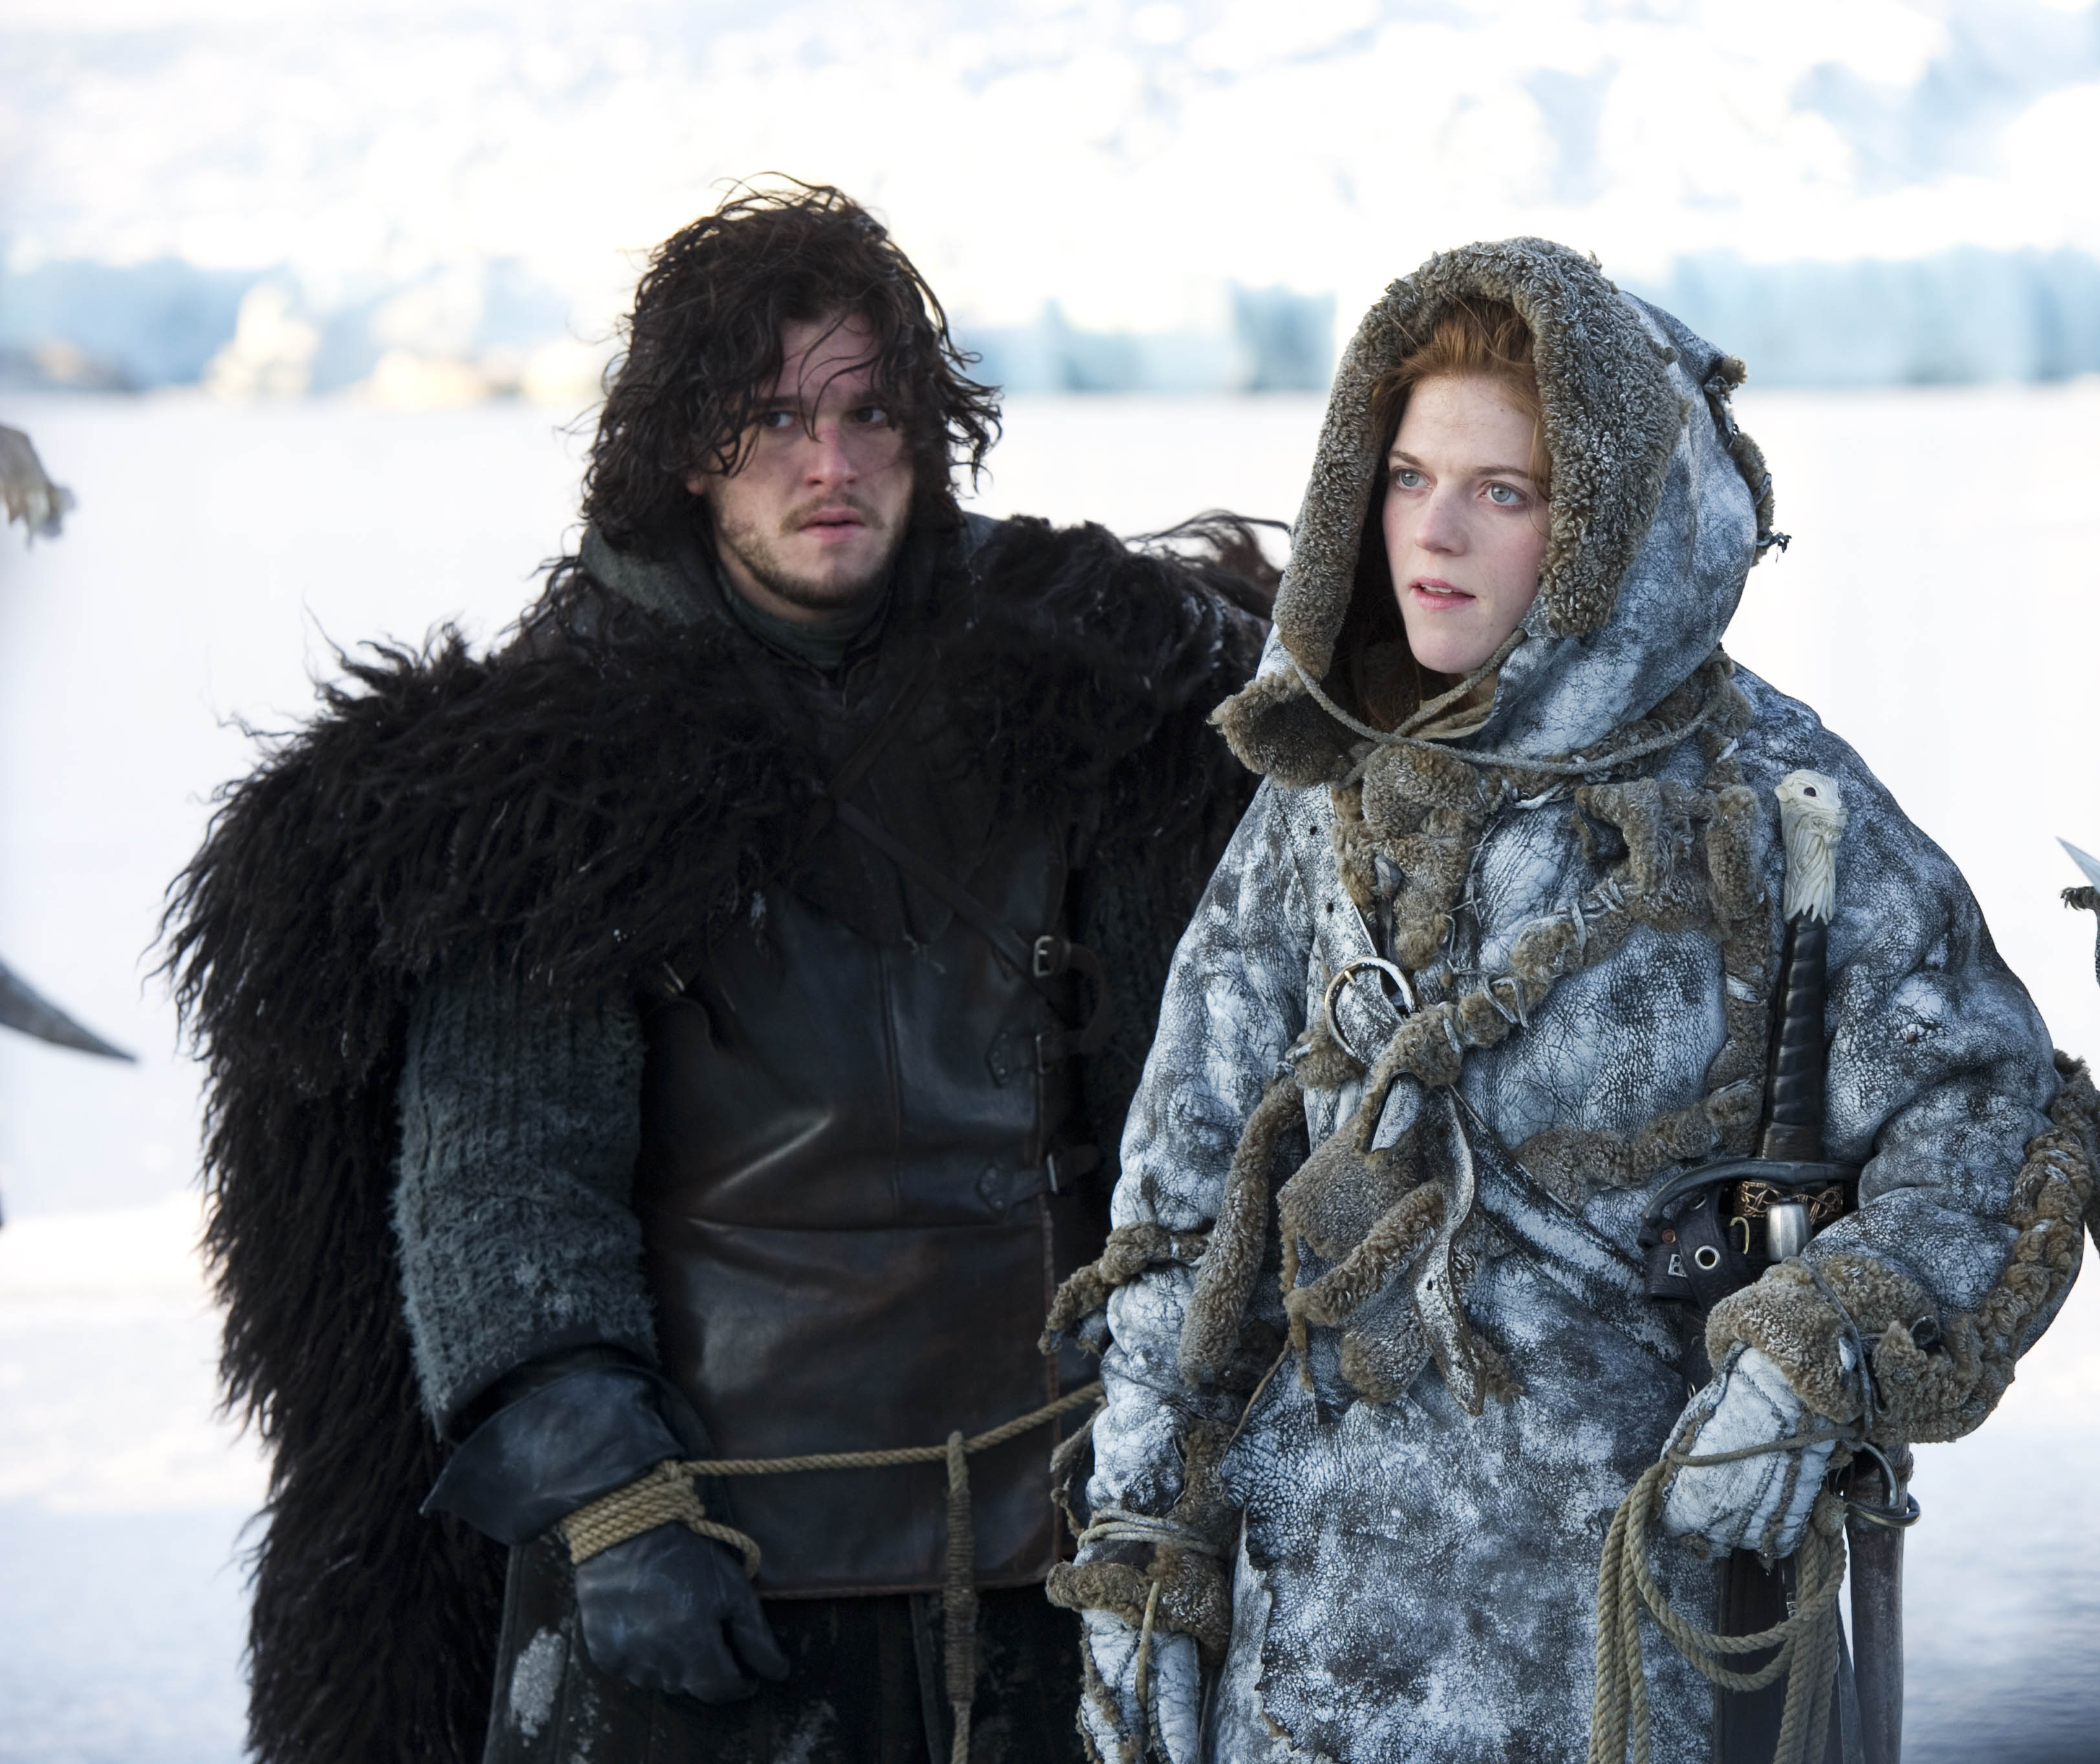 Jon and Ygritte shared an emotional scene in episode 9 (Picture: HBO)